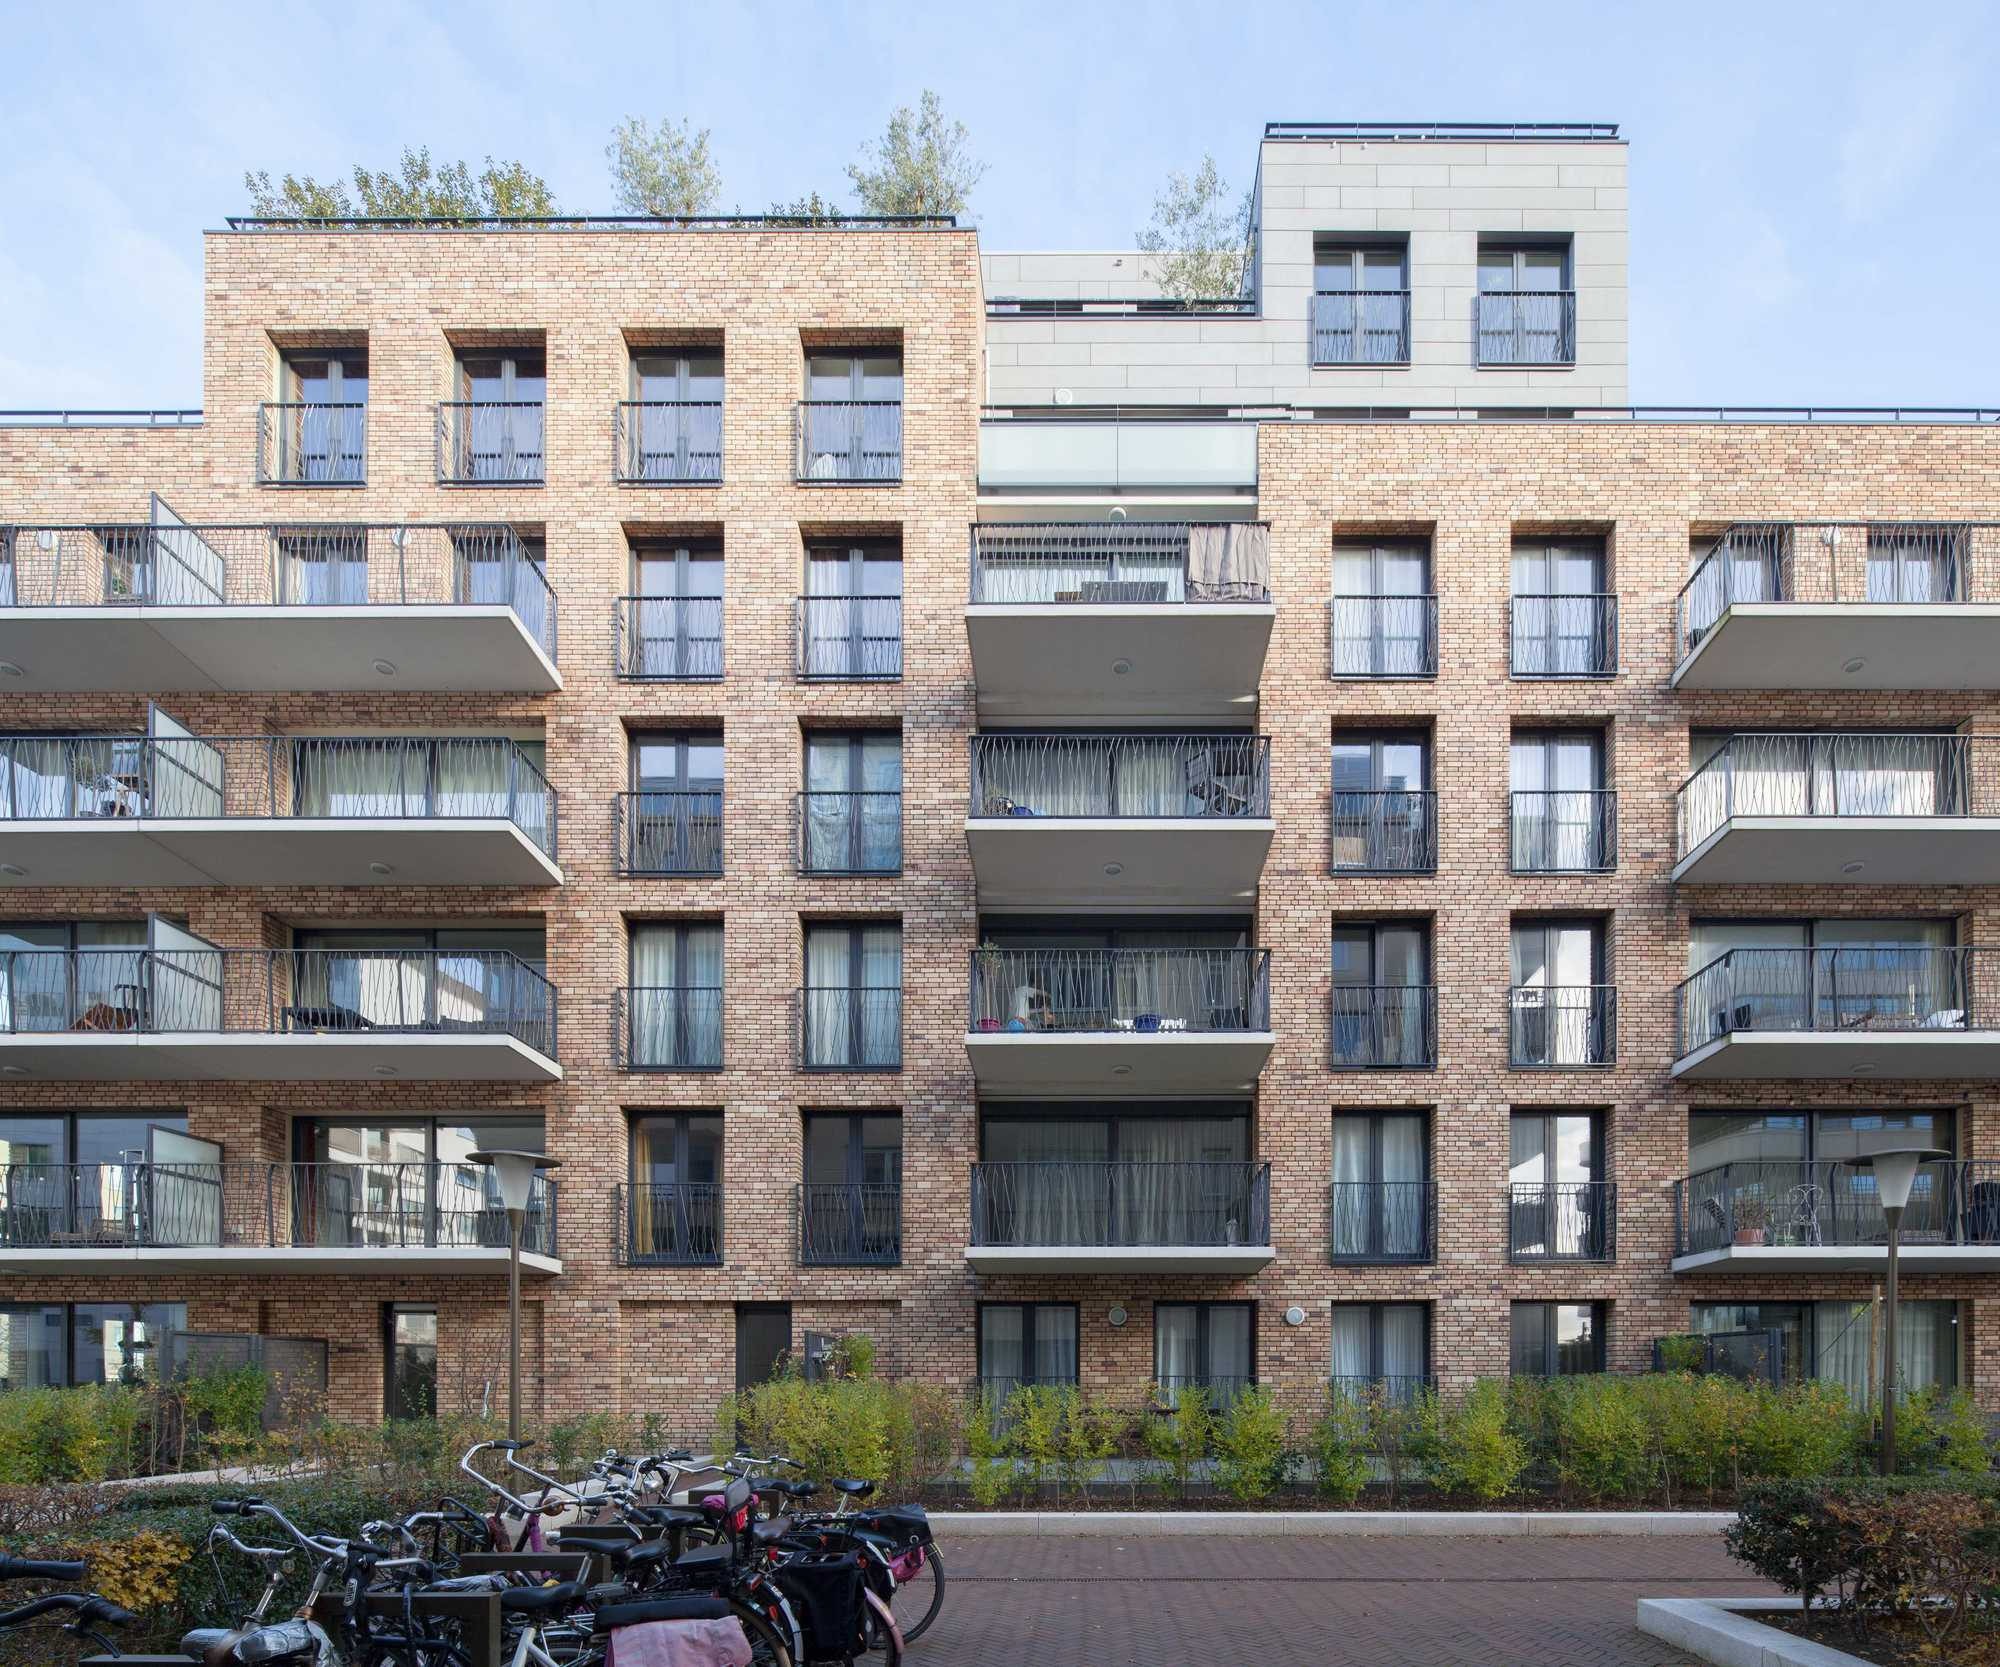 Apartents: De Halve Maen Apartment Building / Mecanoo